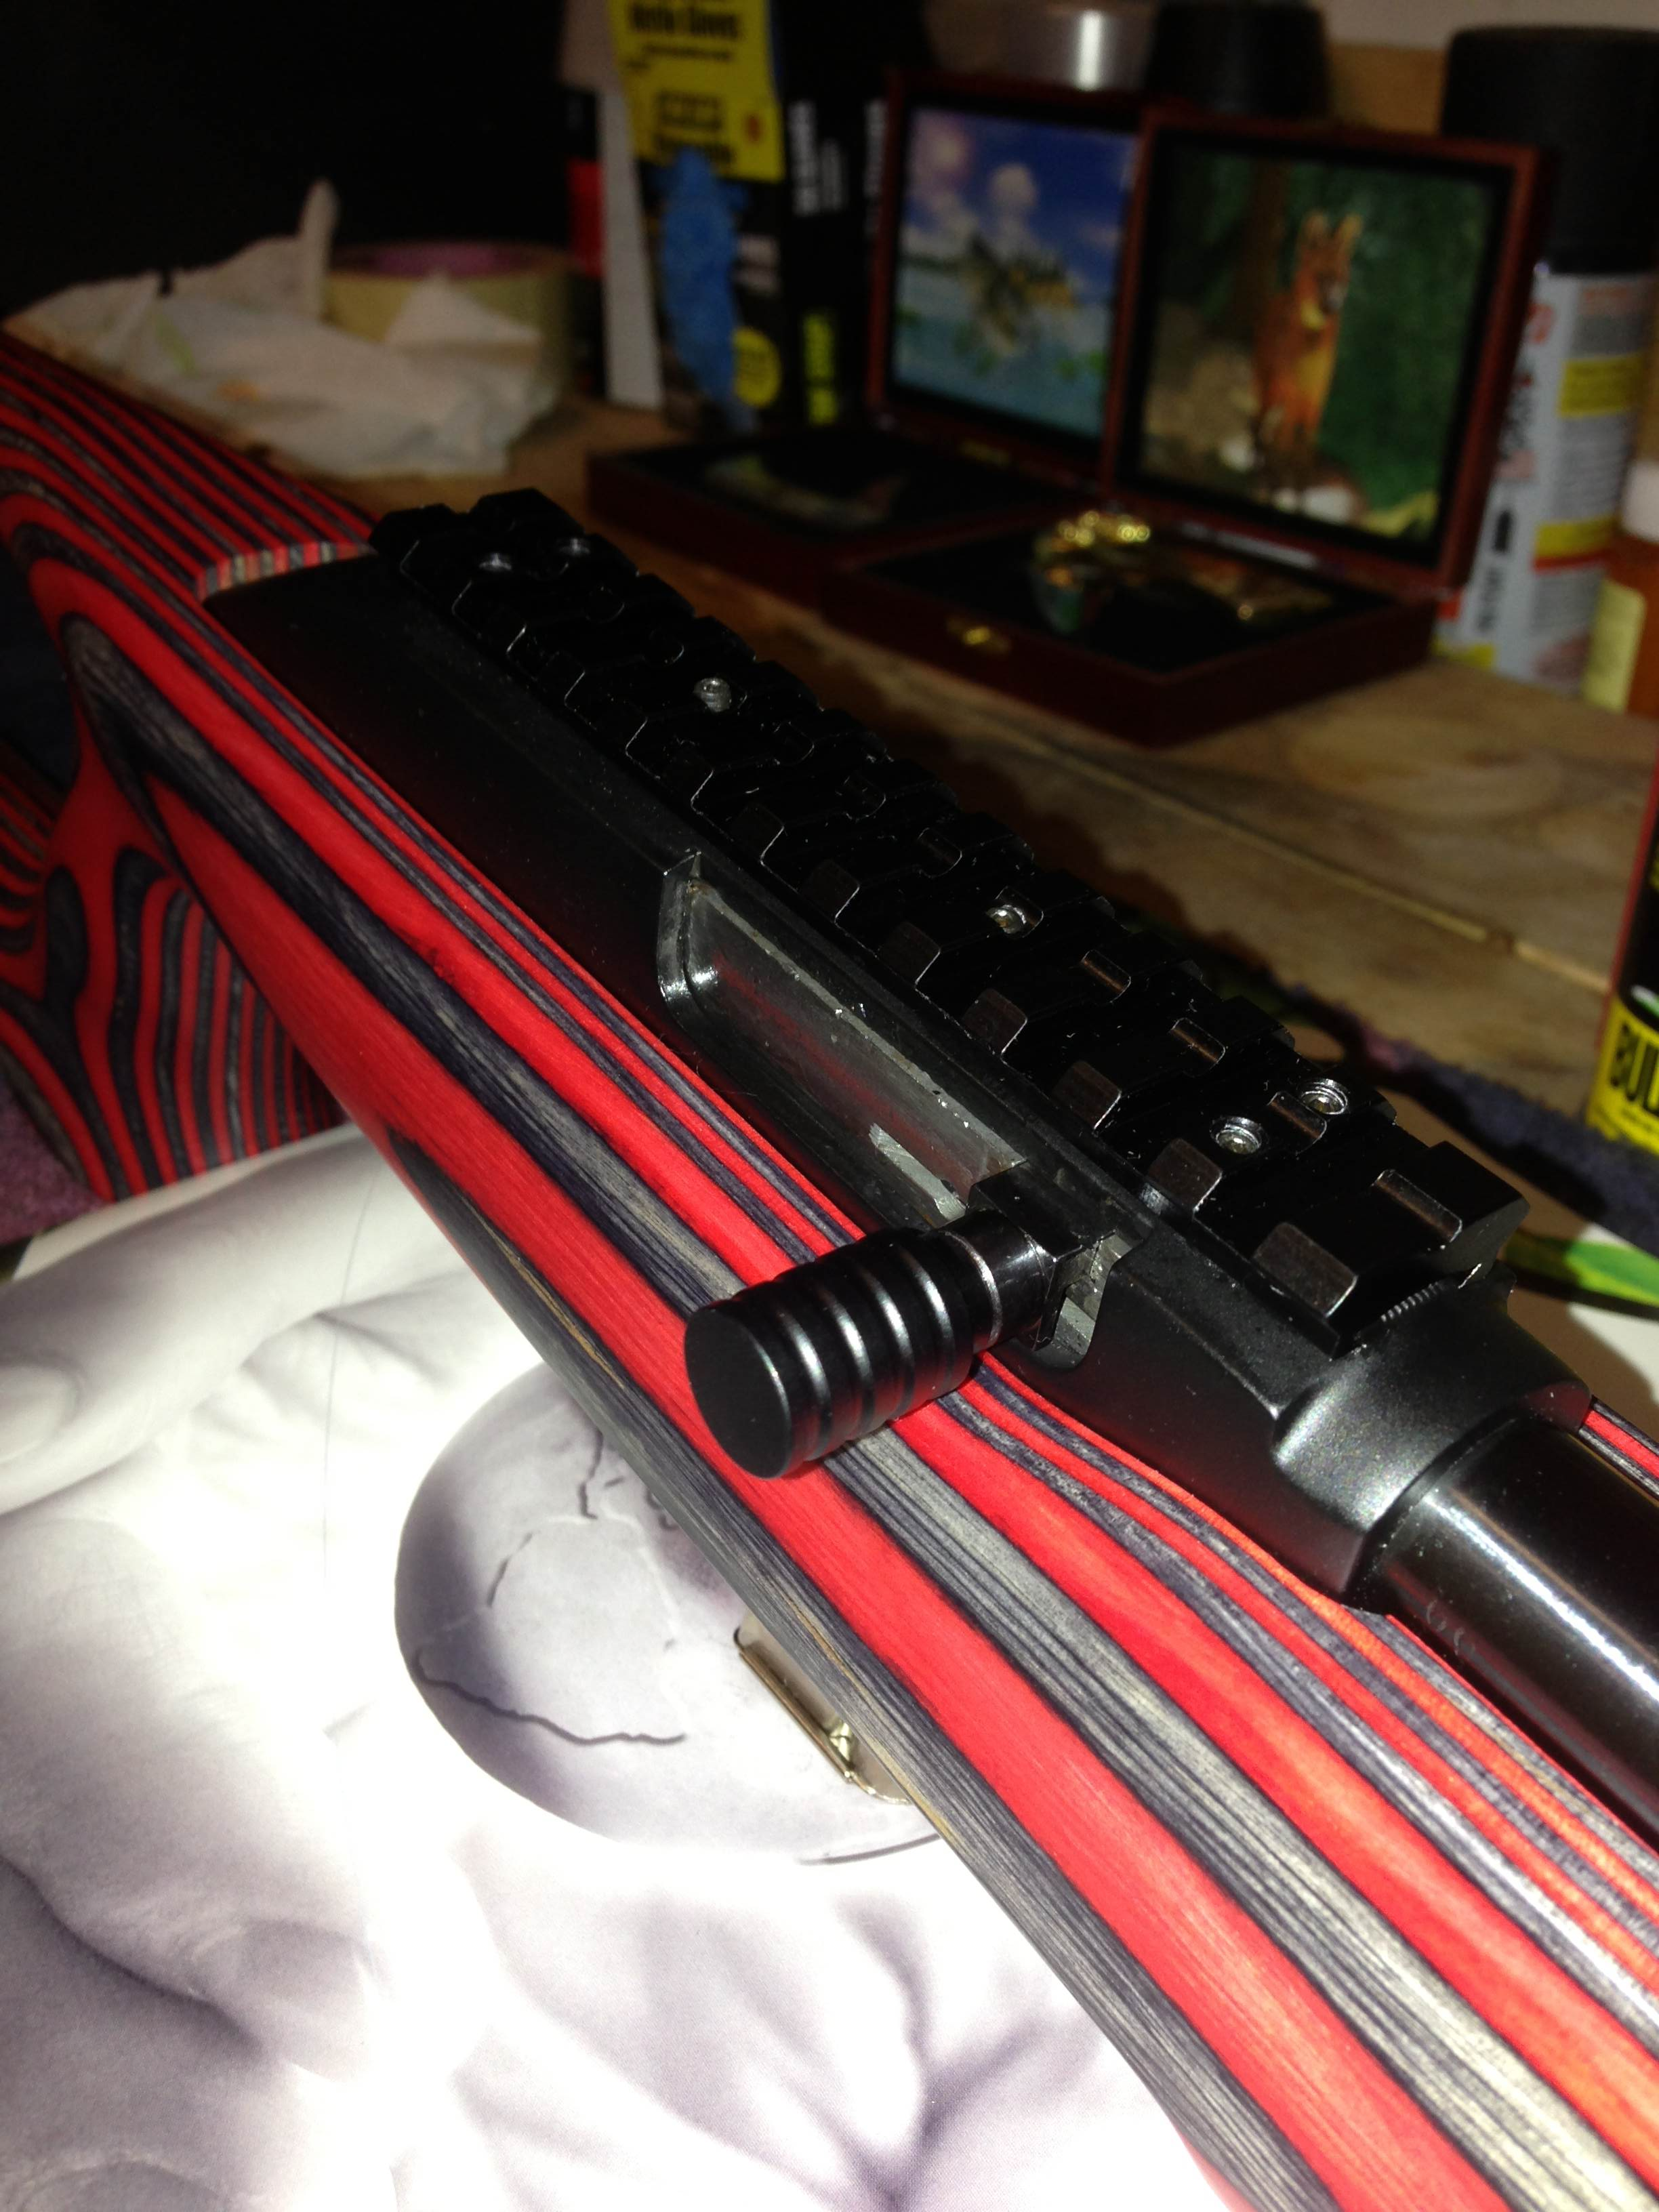 Marlin 795 Upgrades The Inexpensive Multipurpose 22lr Ask Review